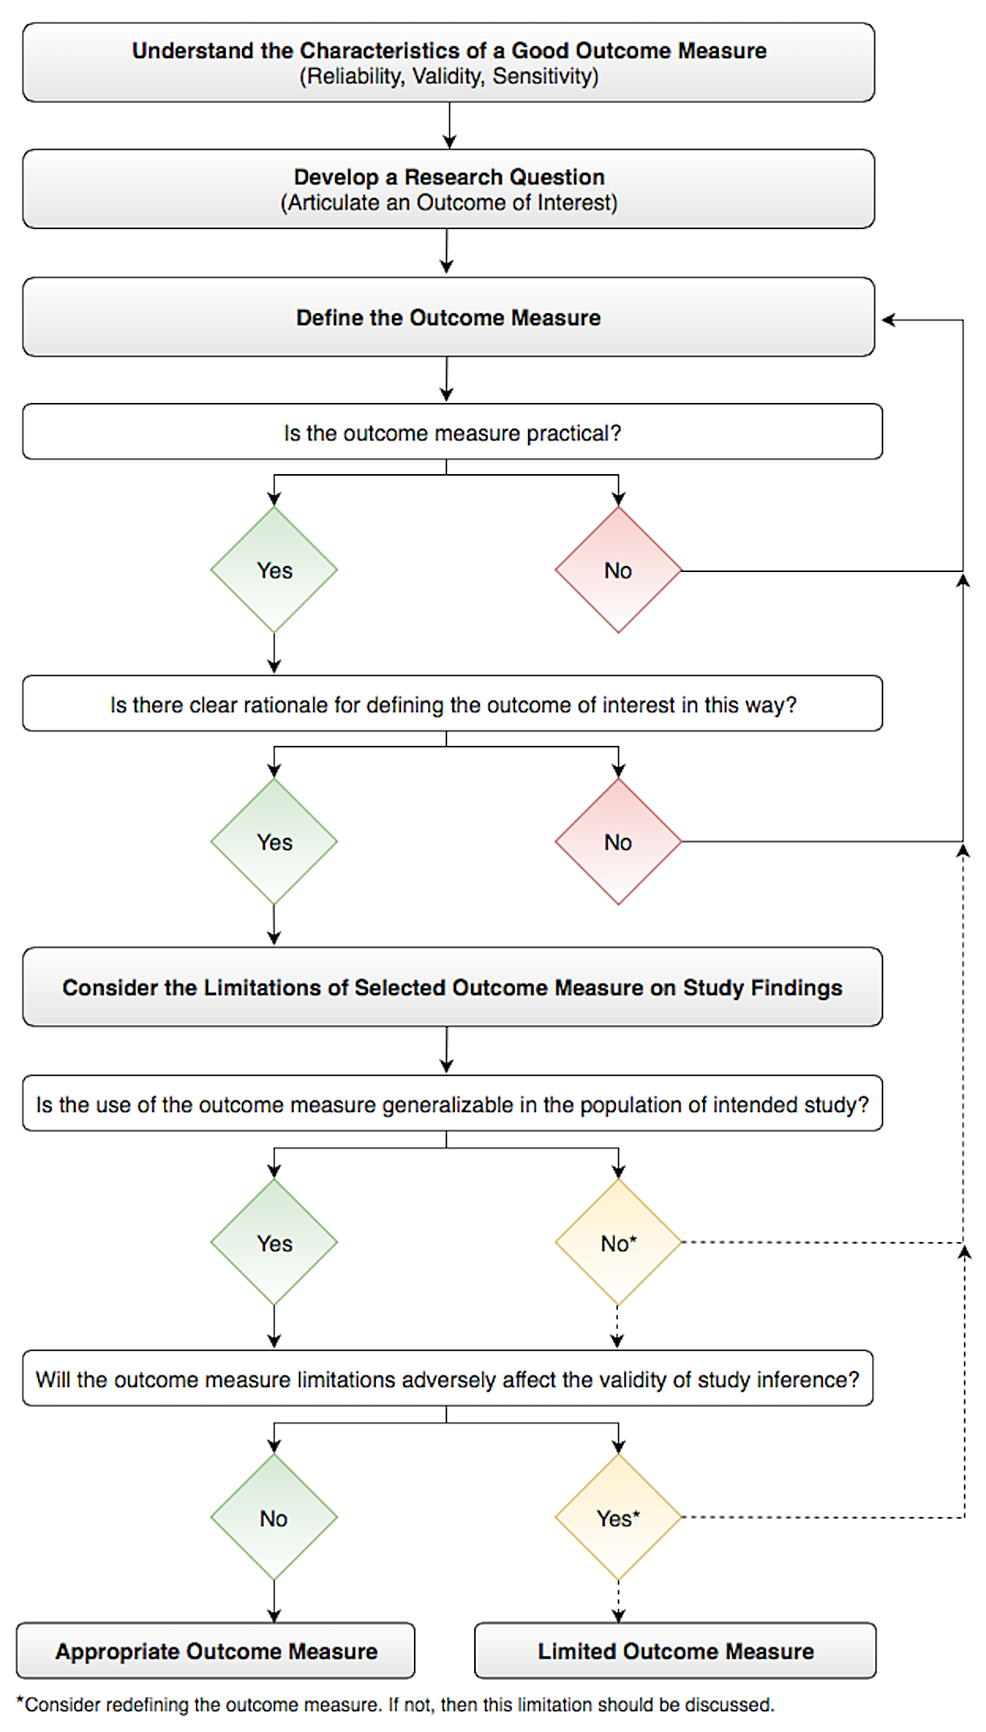 Workflow-for-Selecting-an-Appropriate-Outcome-Measure